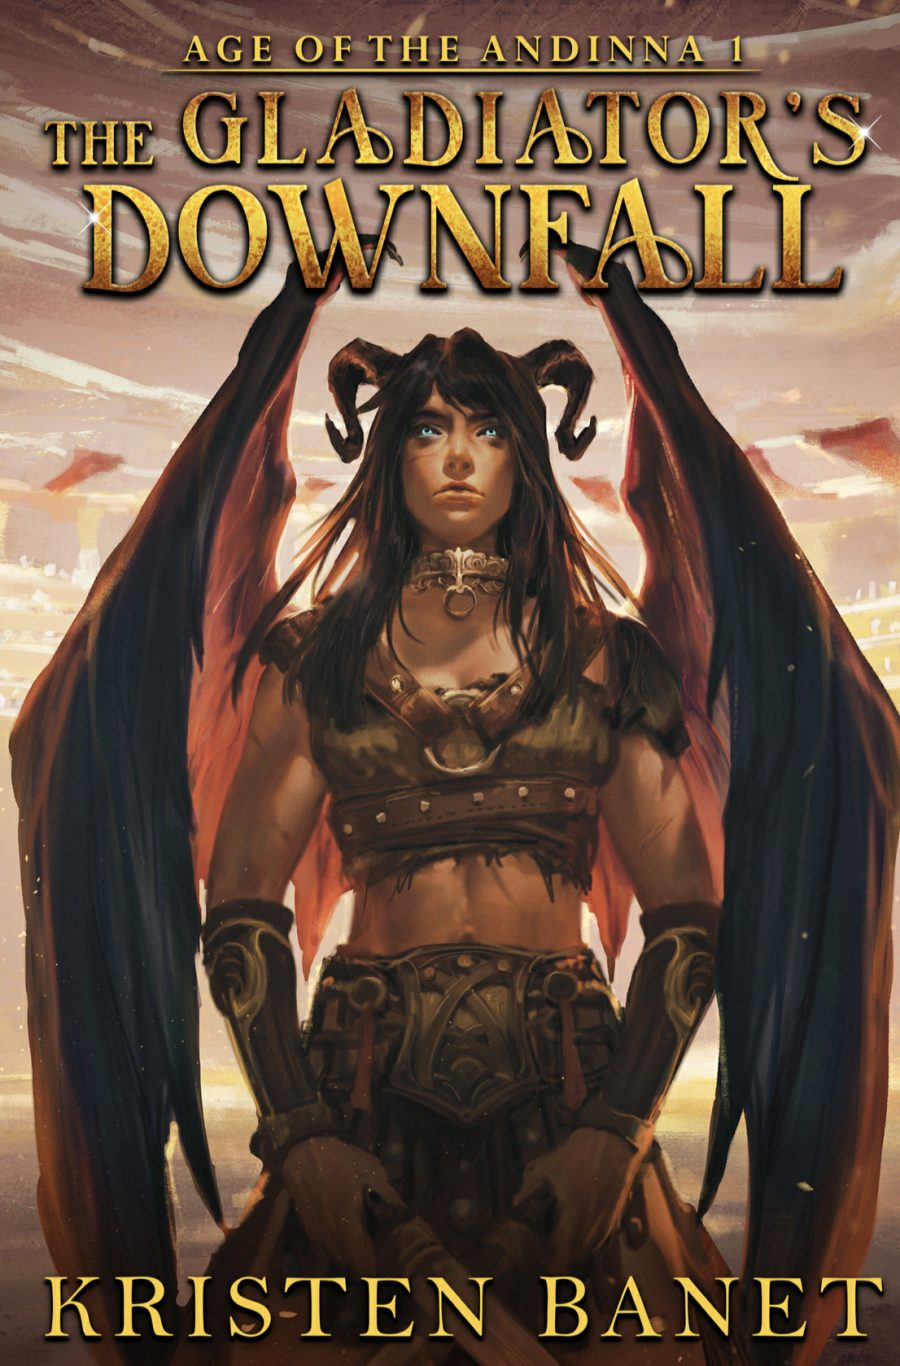 The Gladiator's Downfall by Kristen Banet - A Book Review #BookReview #RH #Whychoose #EpicFantasy #Fantasy #Epic #5Stars #KindleUnlimited #Amazing